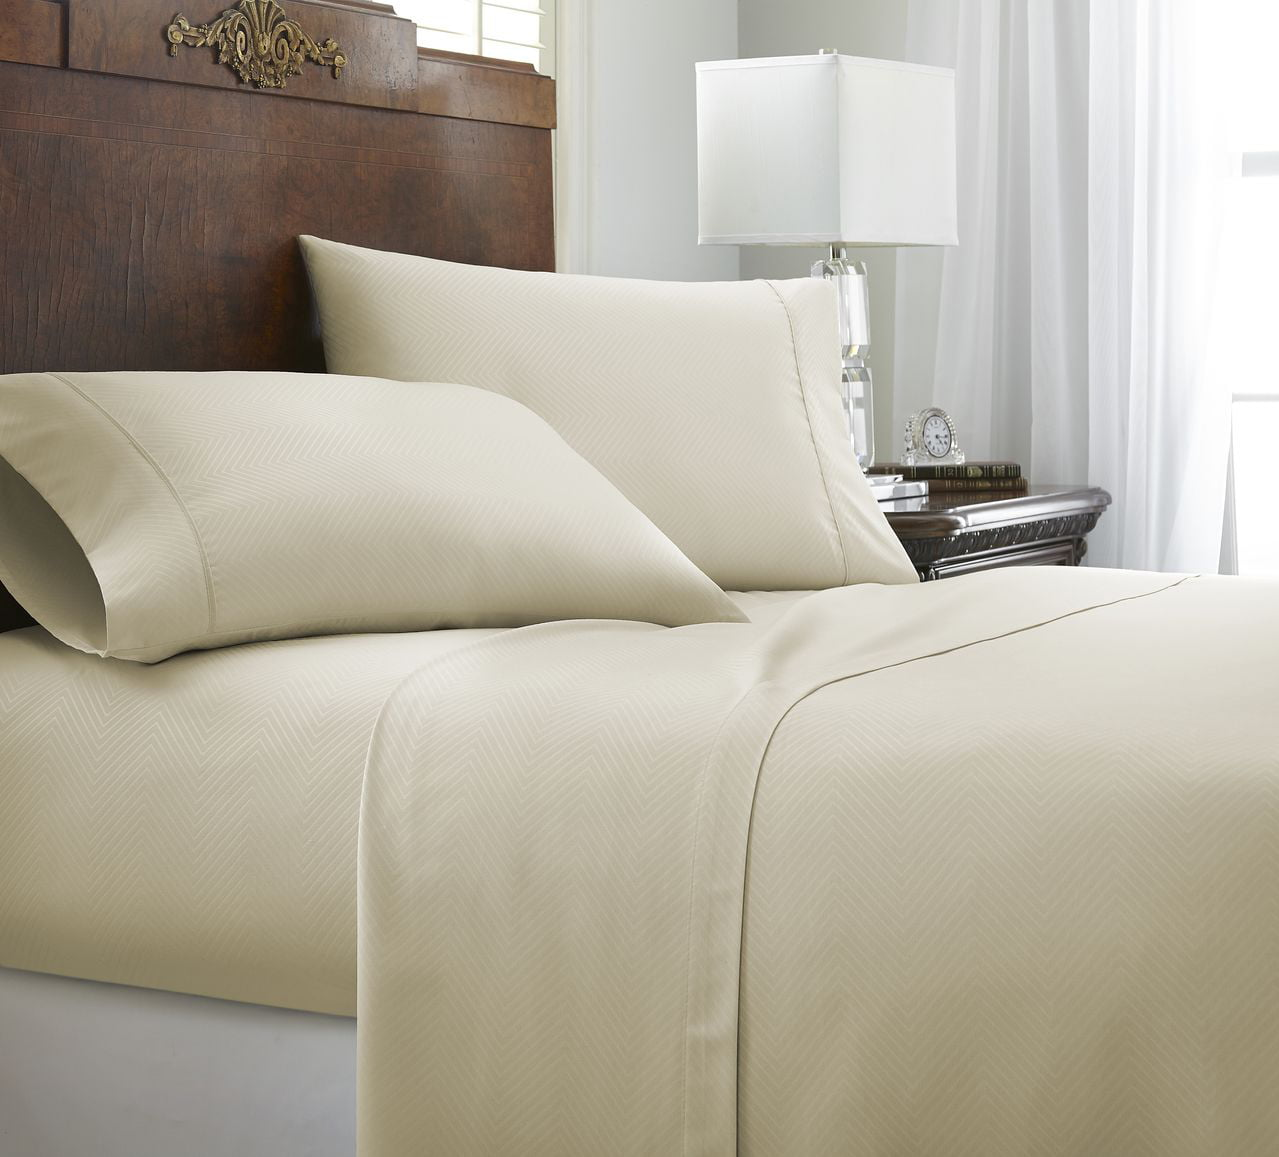 comfort hotel to cariloha blog towels news bamboo and nothing comforter sheets compares